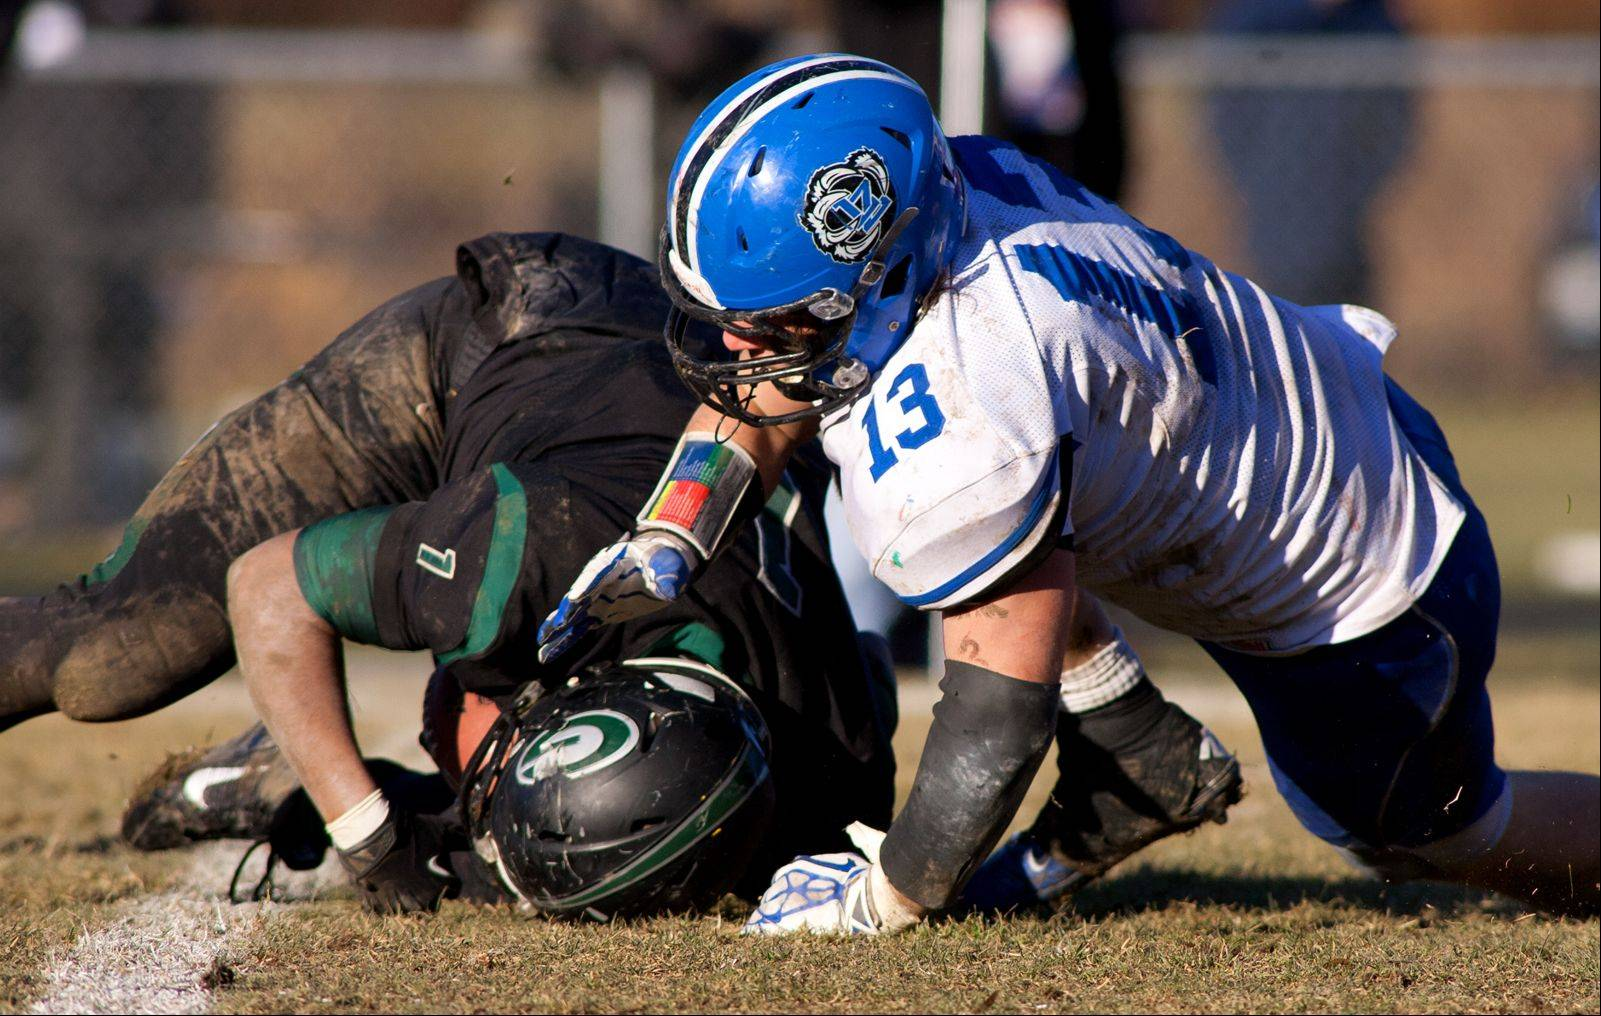 Lake Zurich defensive end Chris Lehtinen makes a tackle during Saturday's Class 7A state semifinal at Glenbard West.